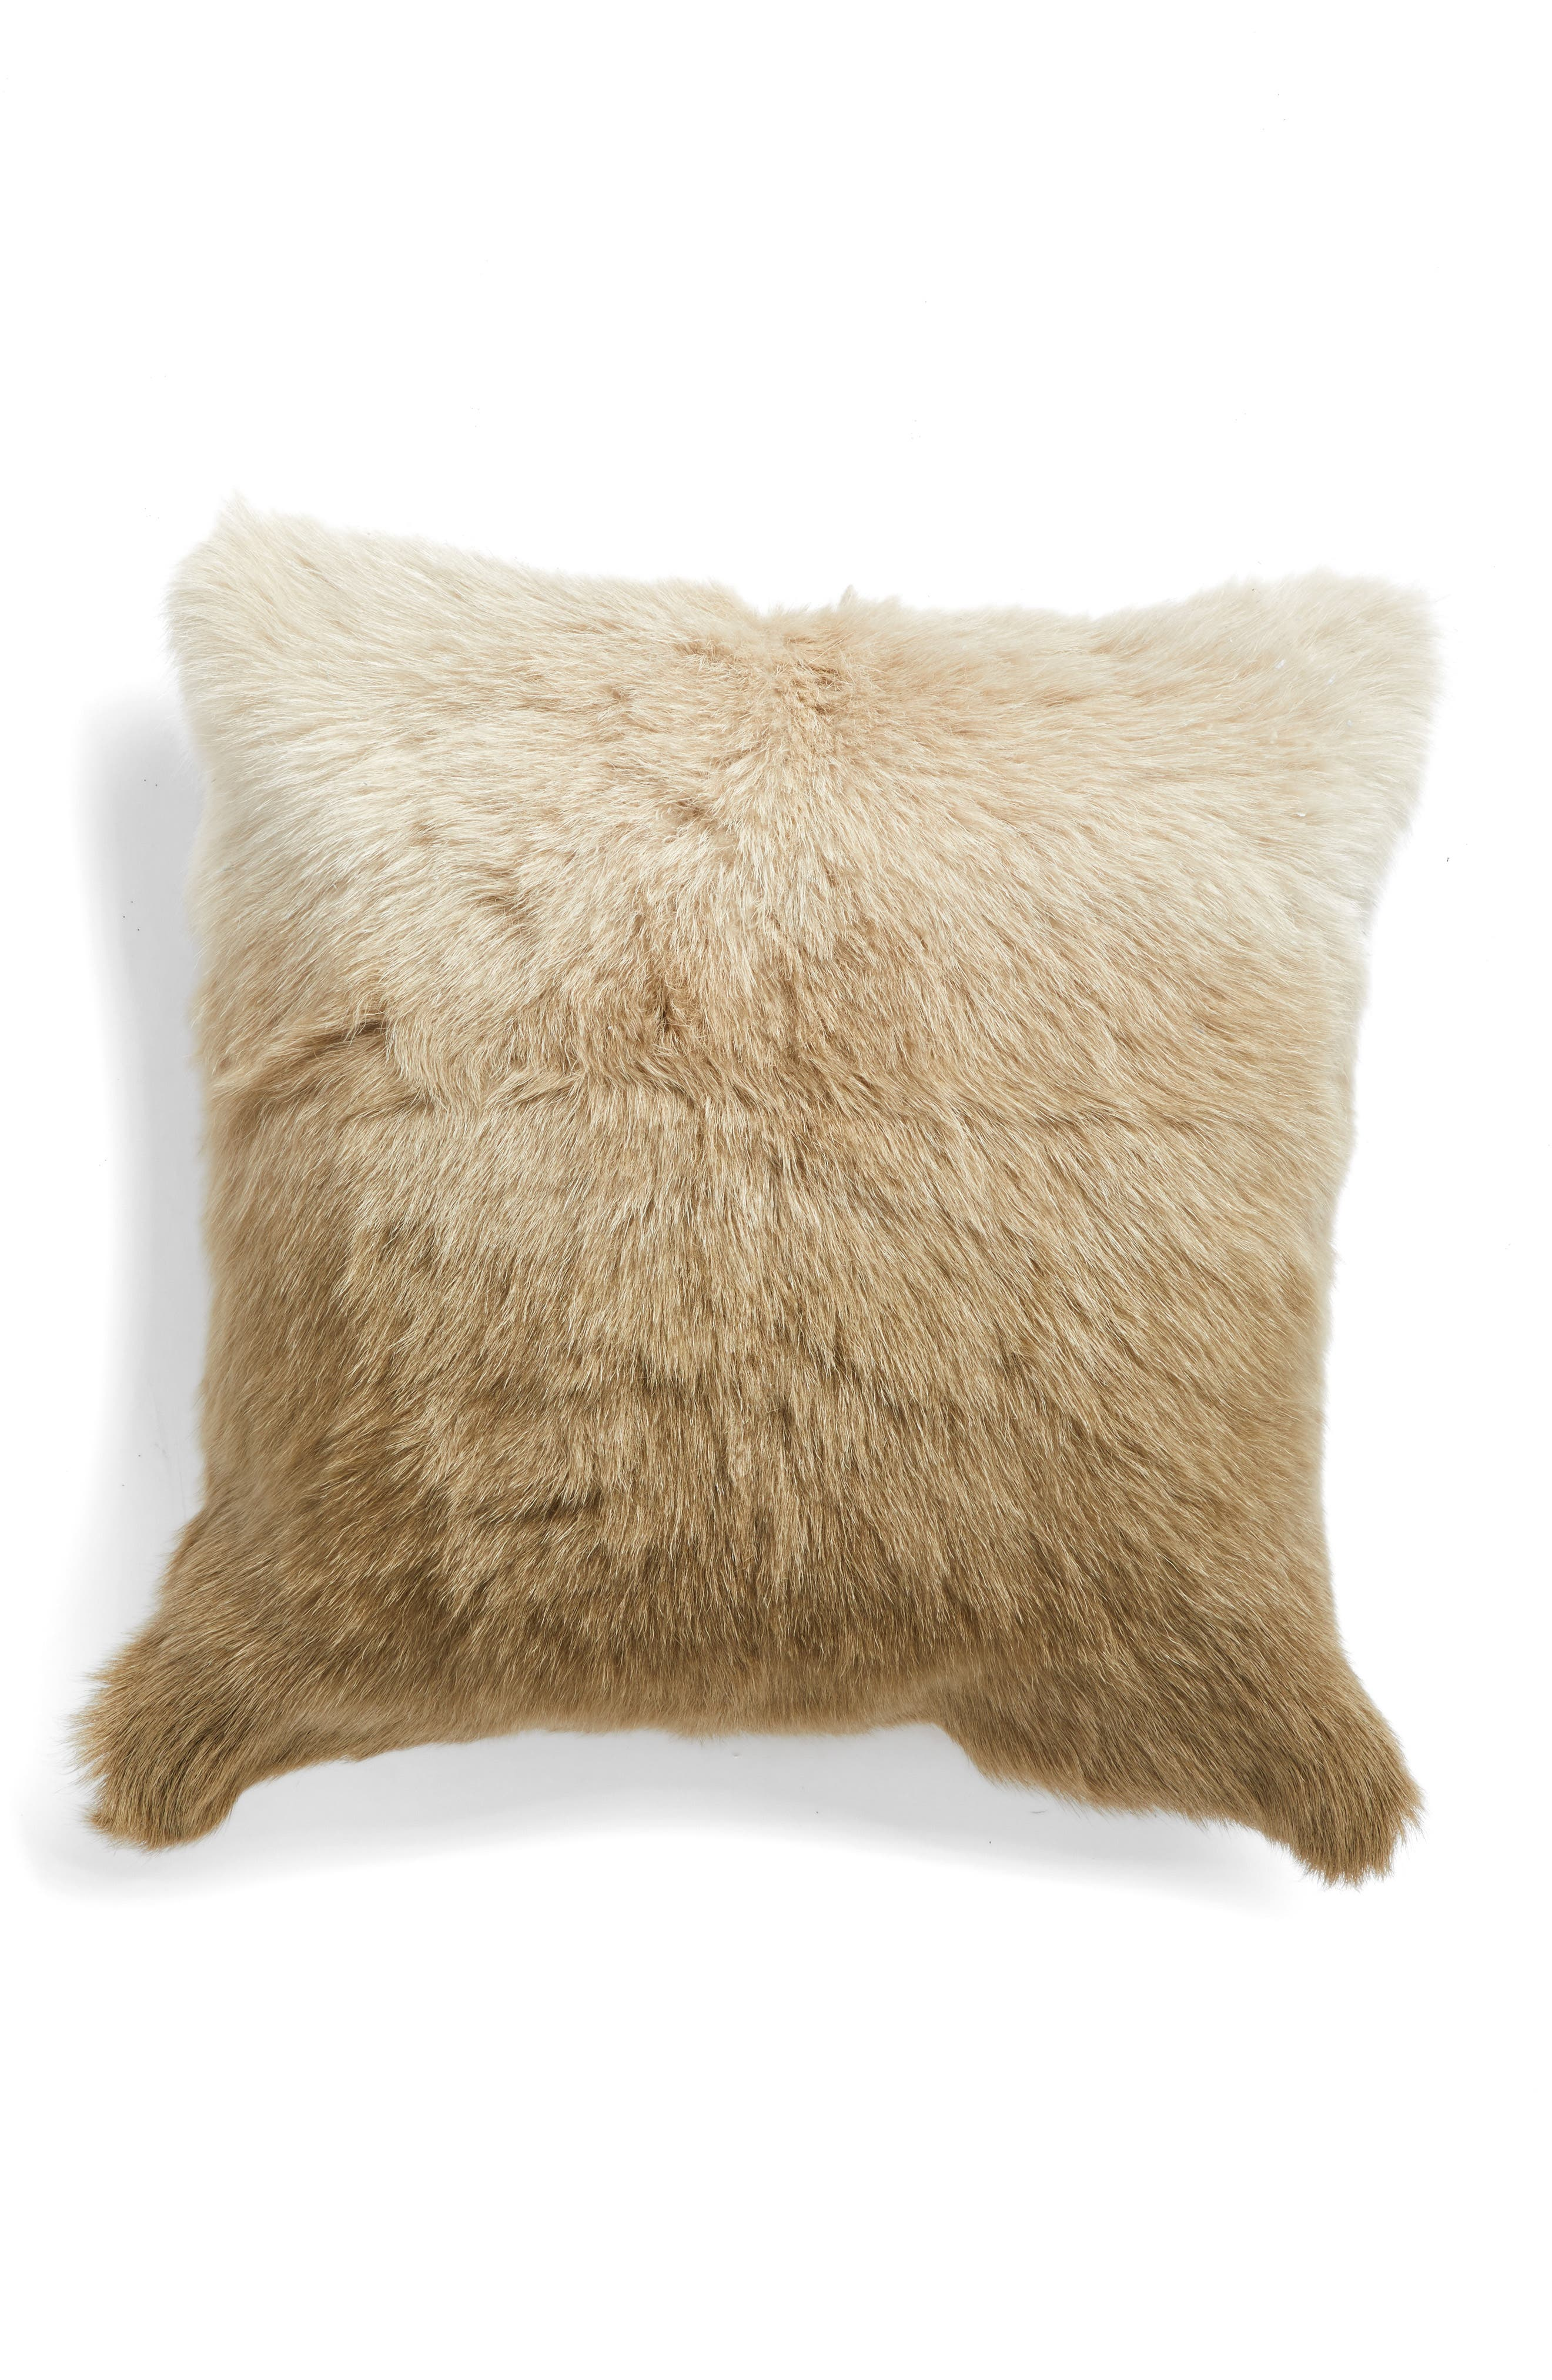 Cloud9 Designs Ombré Genuine Goat Fur Accent Pillow